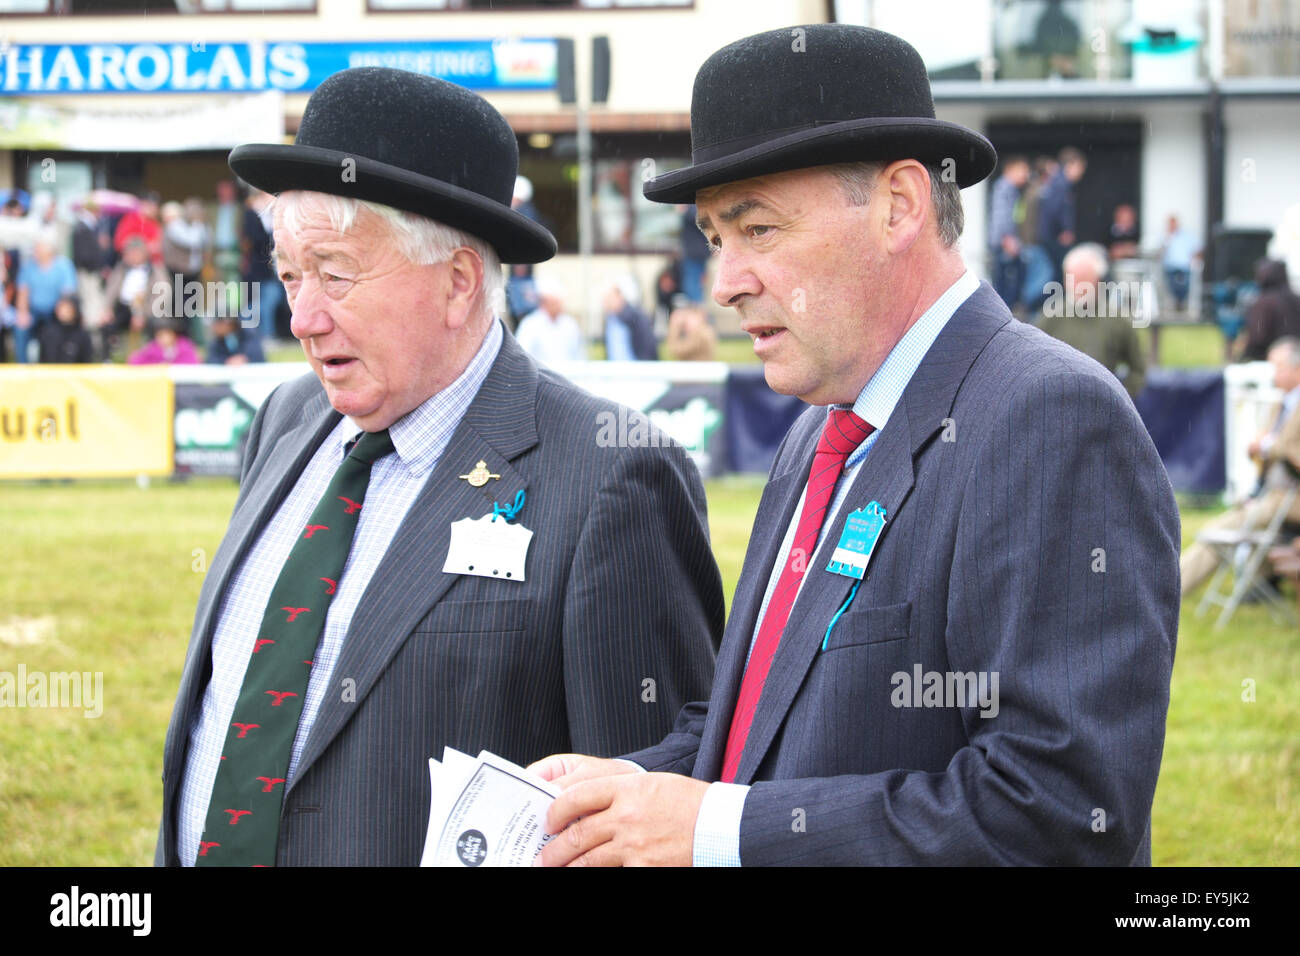 Builth Wells, Powys, Wales, UK. 22nd July 2015. Royal Welsh Show judges with their bowler hats in the cattle ring Stock Photo